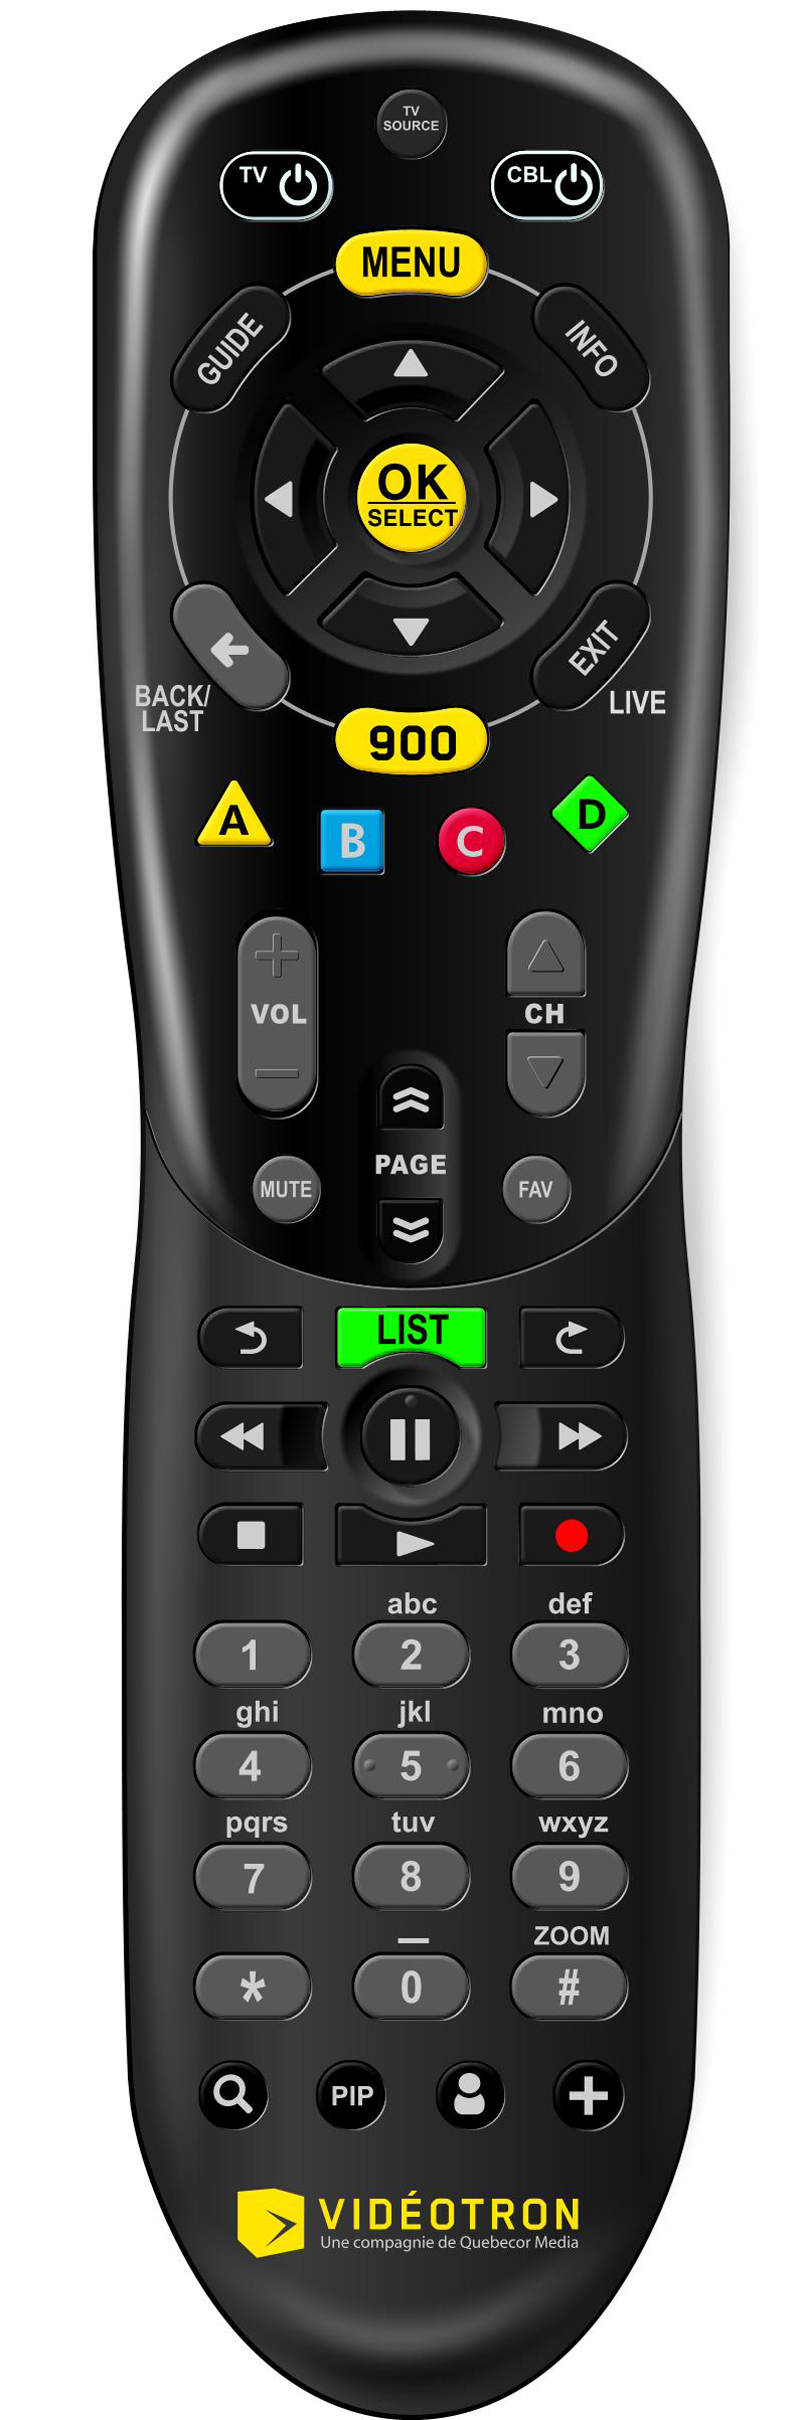 Uverse Remote Codes For Hdtv